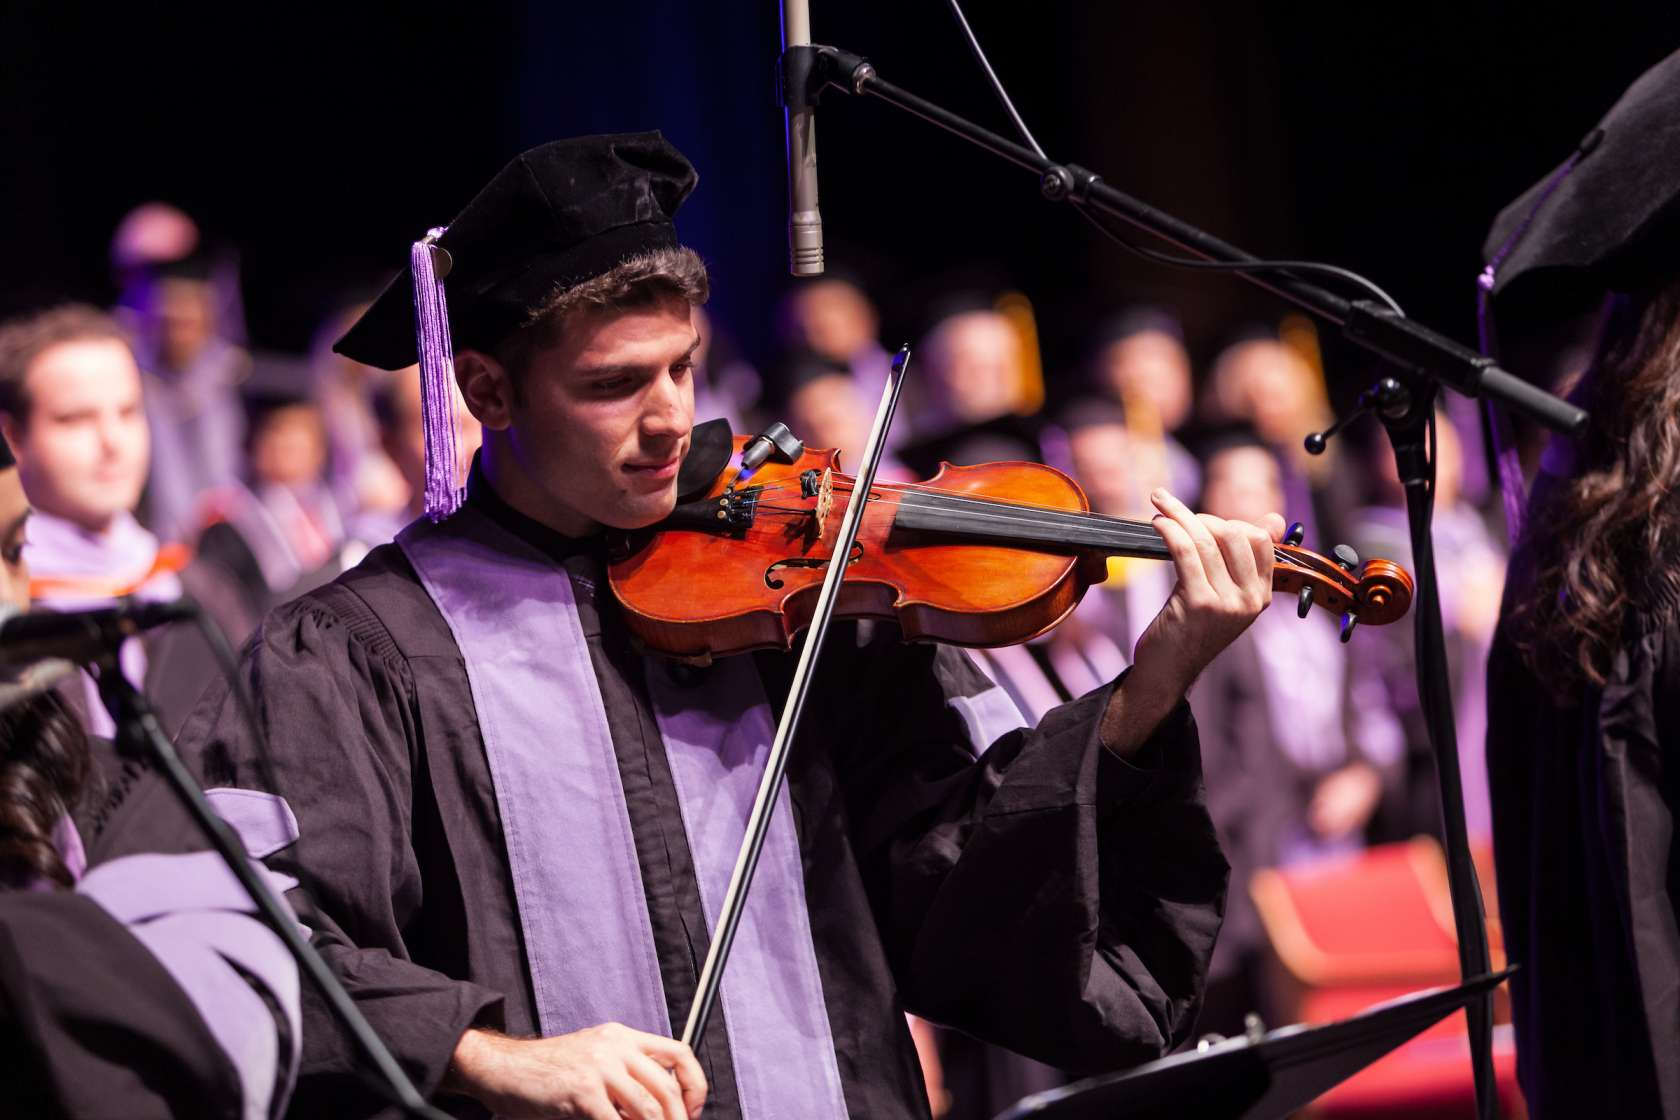 2019 commencement violin player